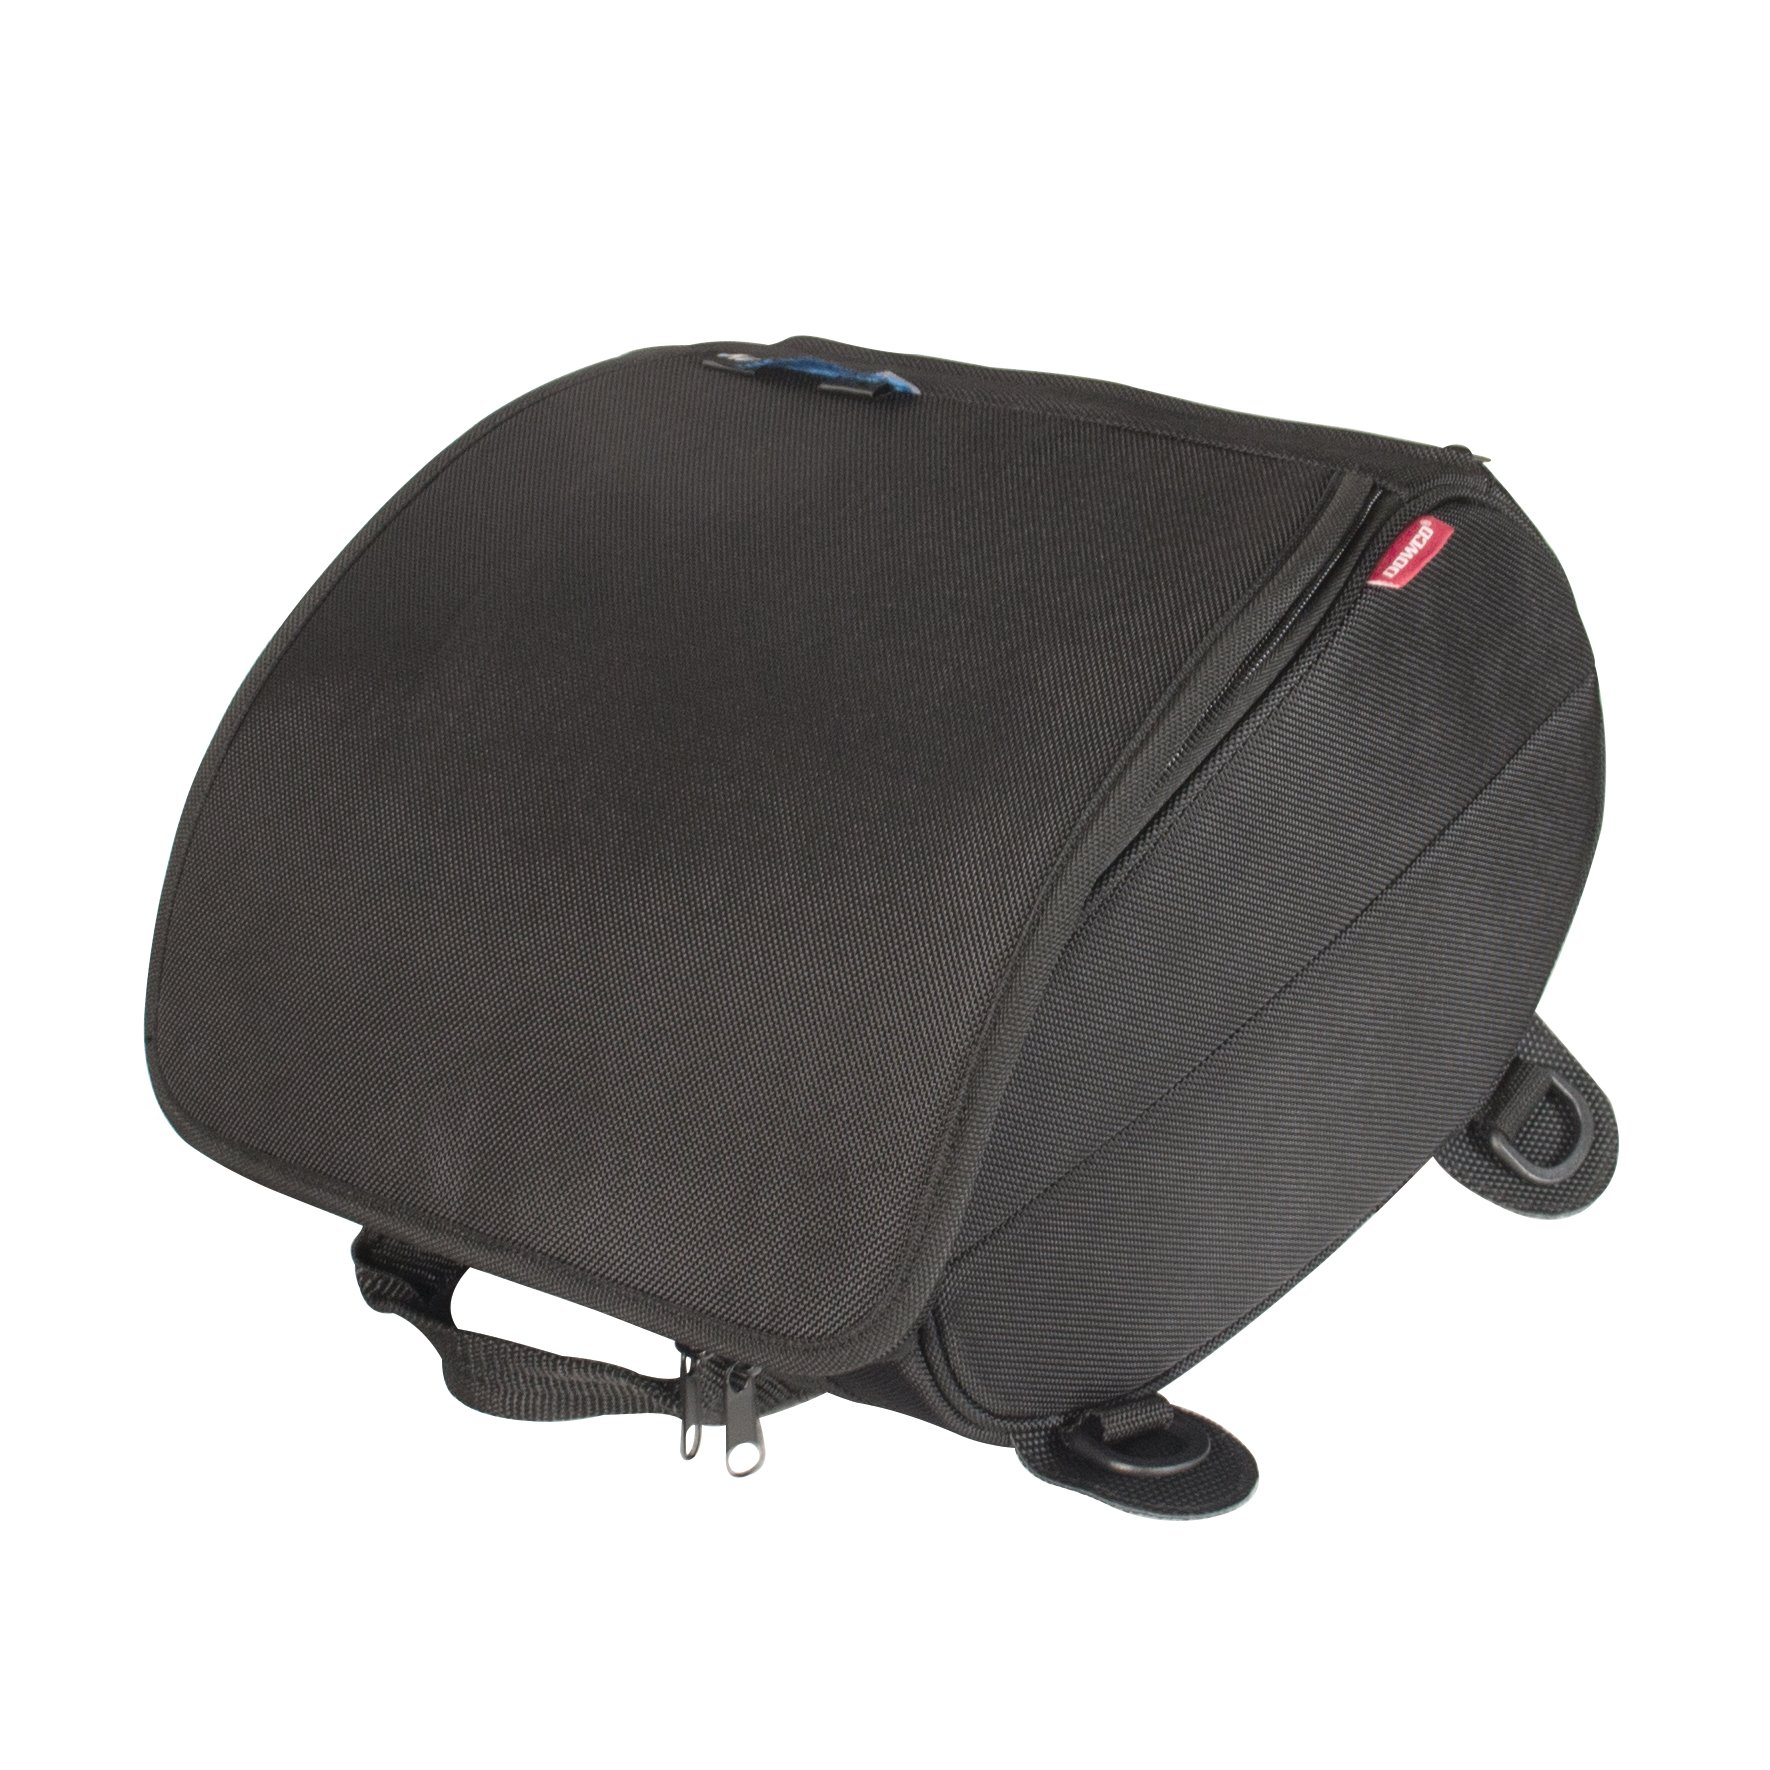 Dowco Rally Pack 50104-00 Water Resistant Motorcycle Tail Bag: Black, Universal Fit, 24 Liter Capacity